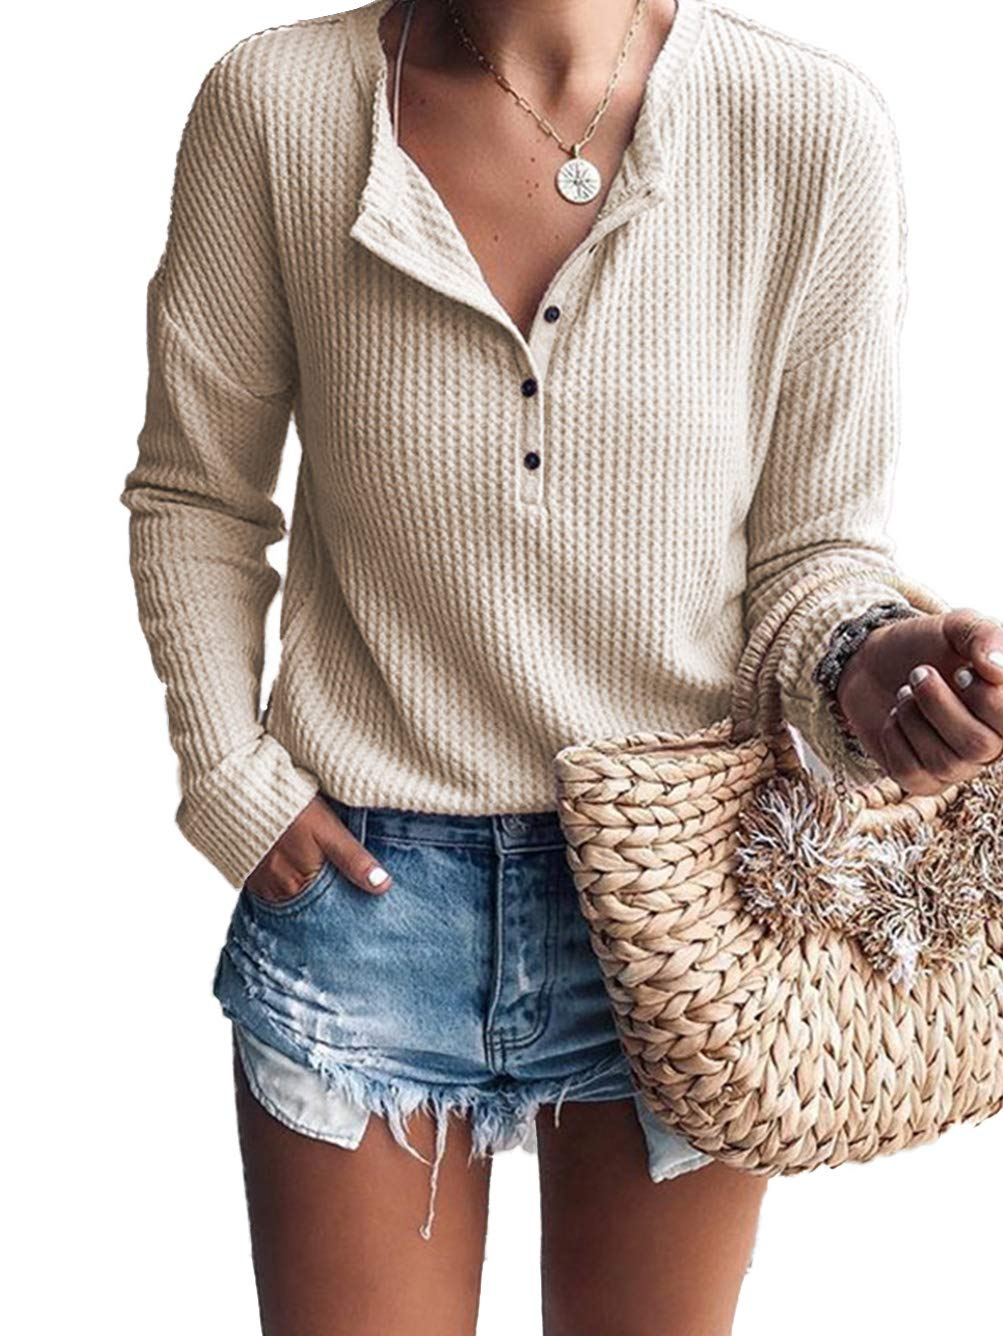 Famulily Women's Waffle Knit Tunic Tops Loose Long Sleeve Button Up V Neck Henley Shirts (Beige, Small) by Famulily